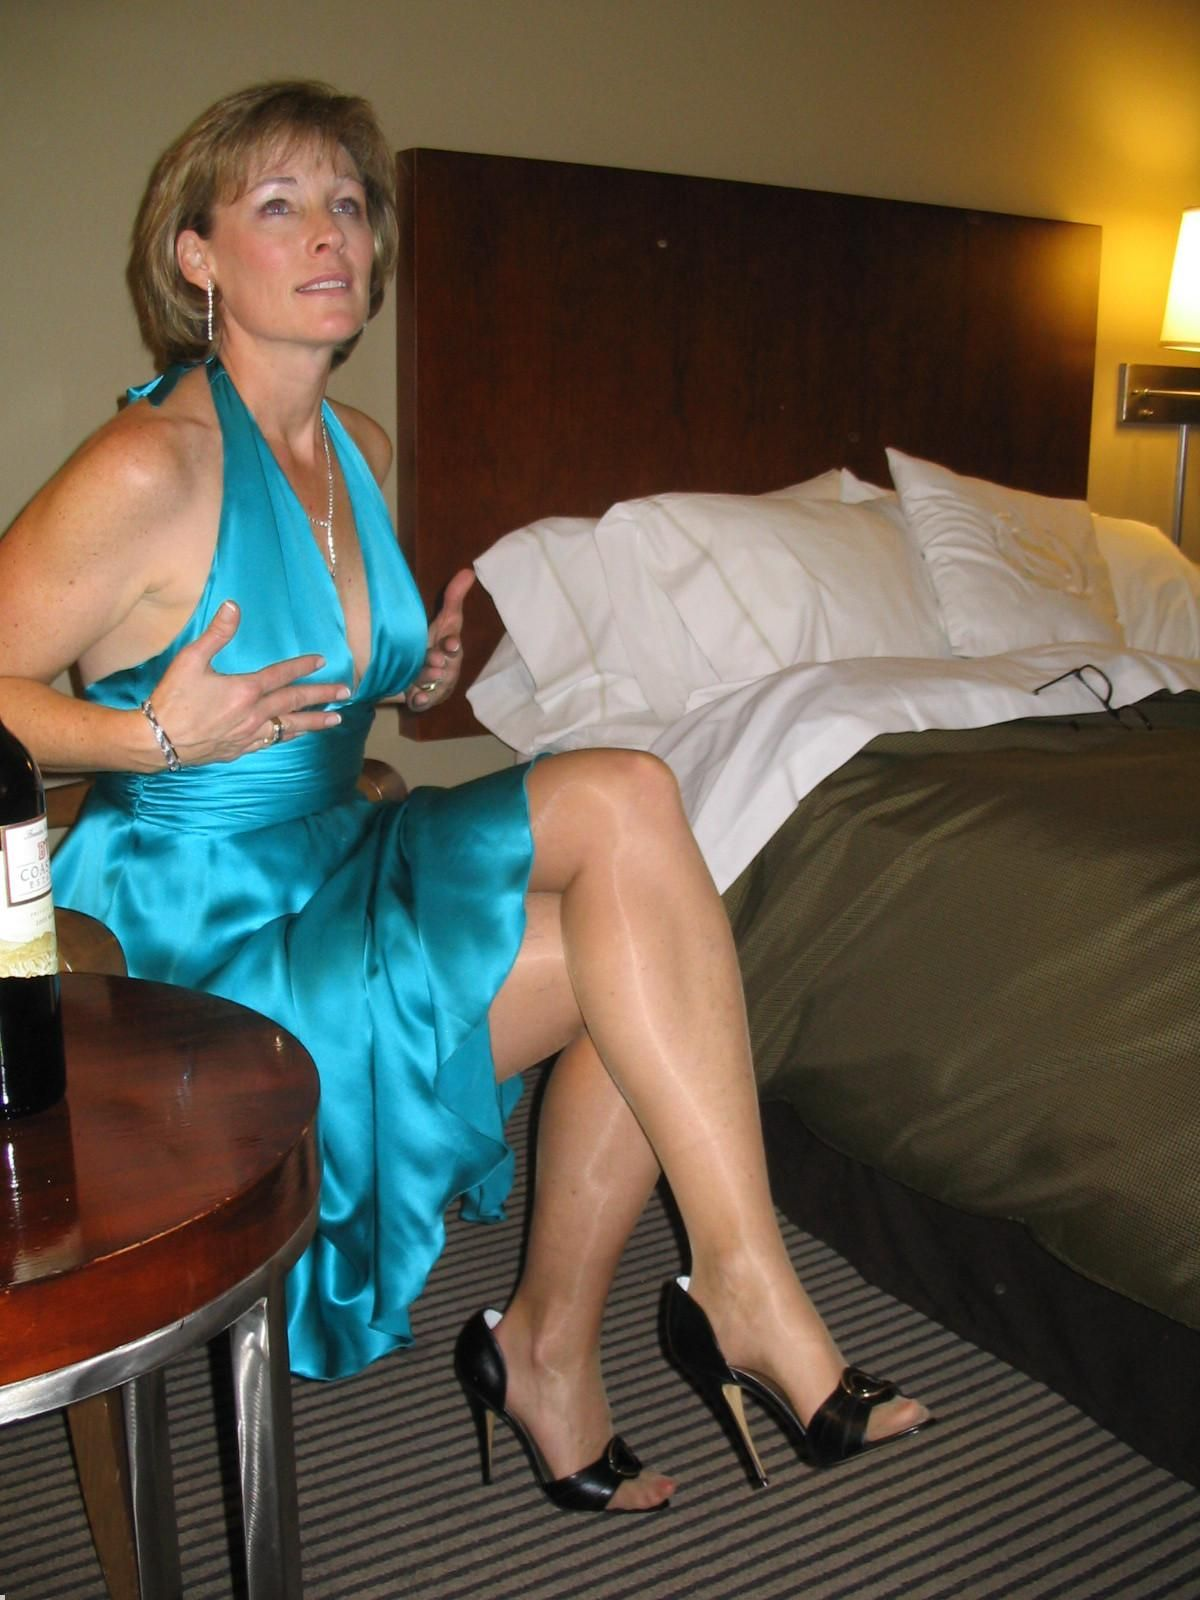 nye milf personals New year's eve party turns into a swinger party - click here for free porn movies in hd-quality on mobiles, tablets and pcs.